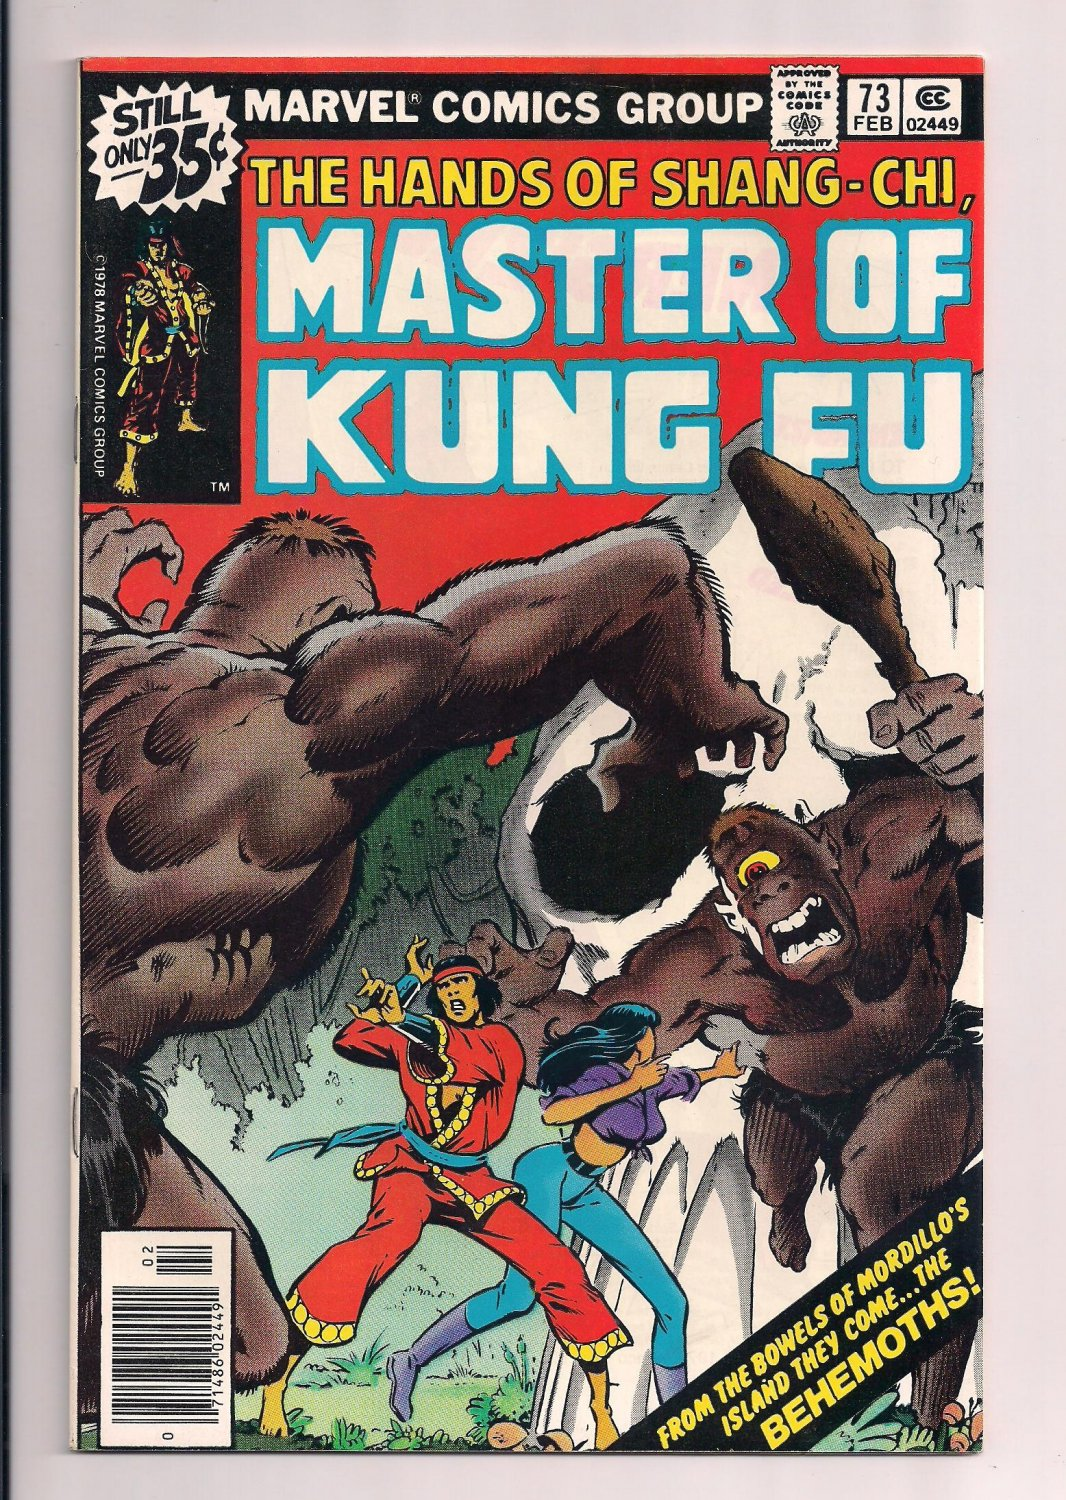 Shang-Chi, Master of Kung Fu #73 a (1979) very fine / near mint condition comic